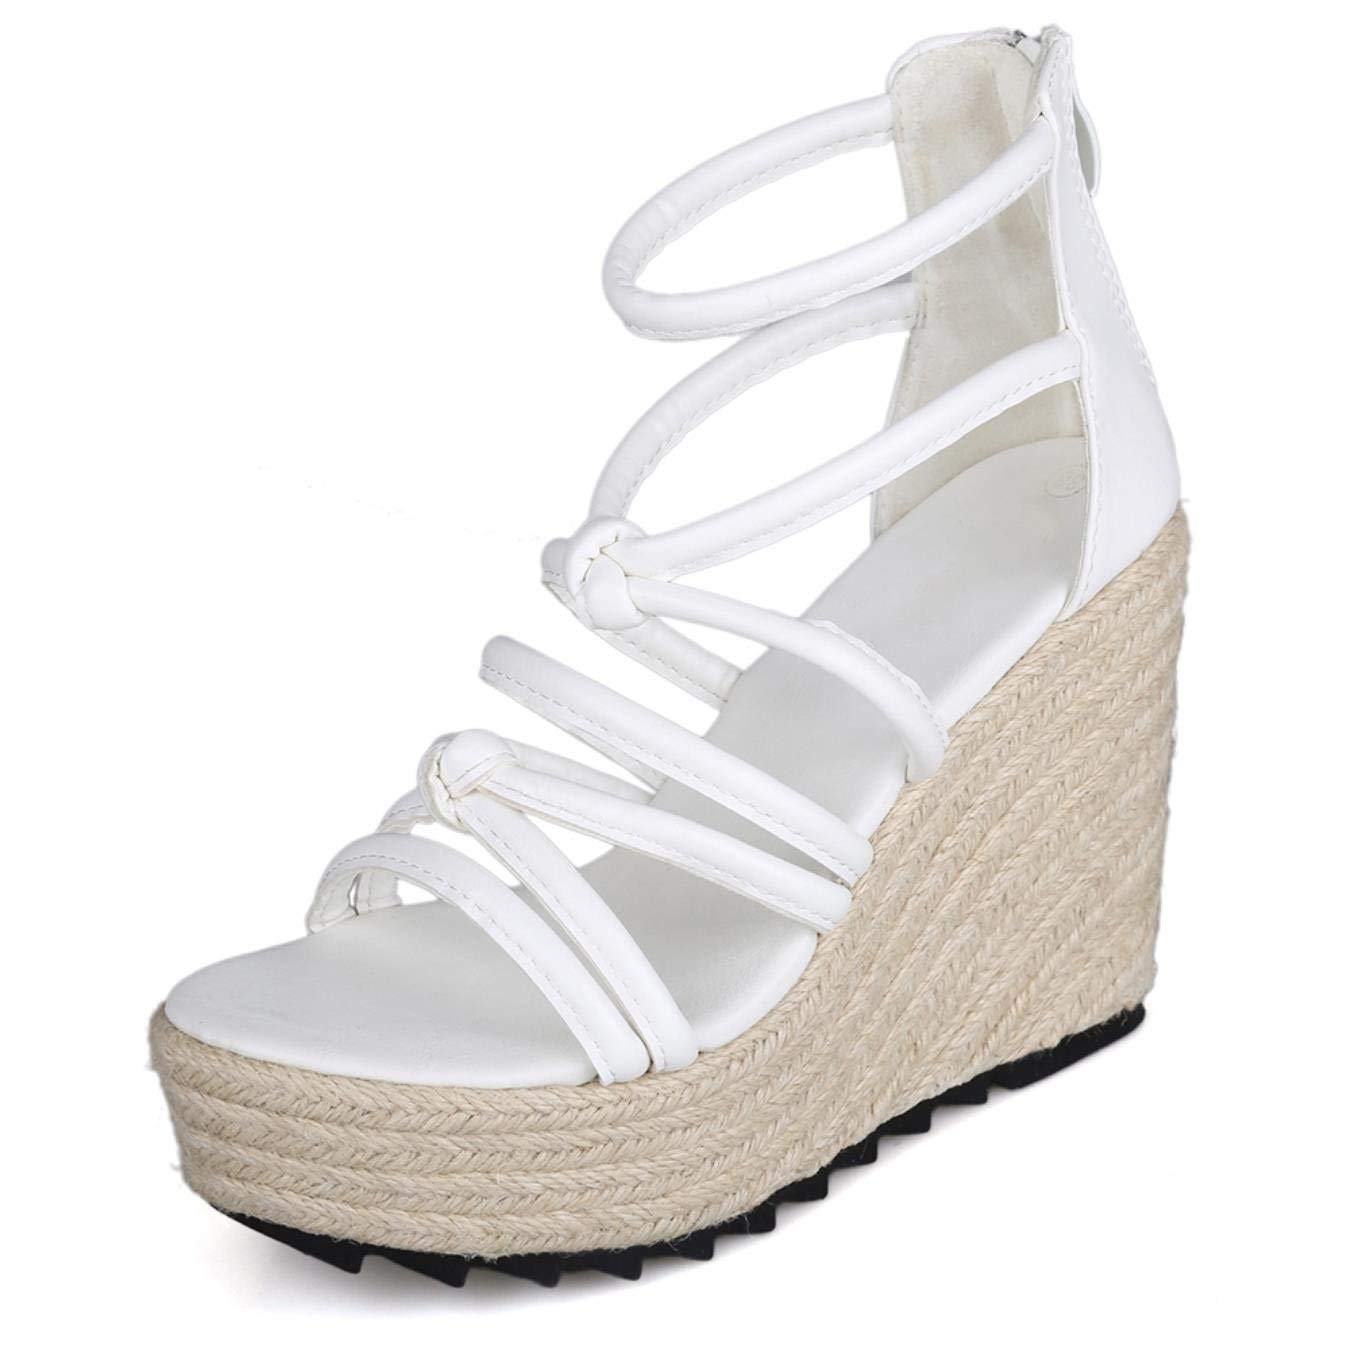 b6db533c04c65b Get Quotations · Summer Wedges Sandals Peep-toe Gladiator Shoes Lace-up  Hollow Beach Shoes 10CM High